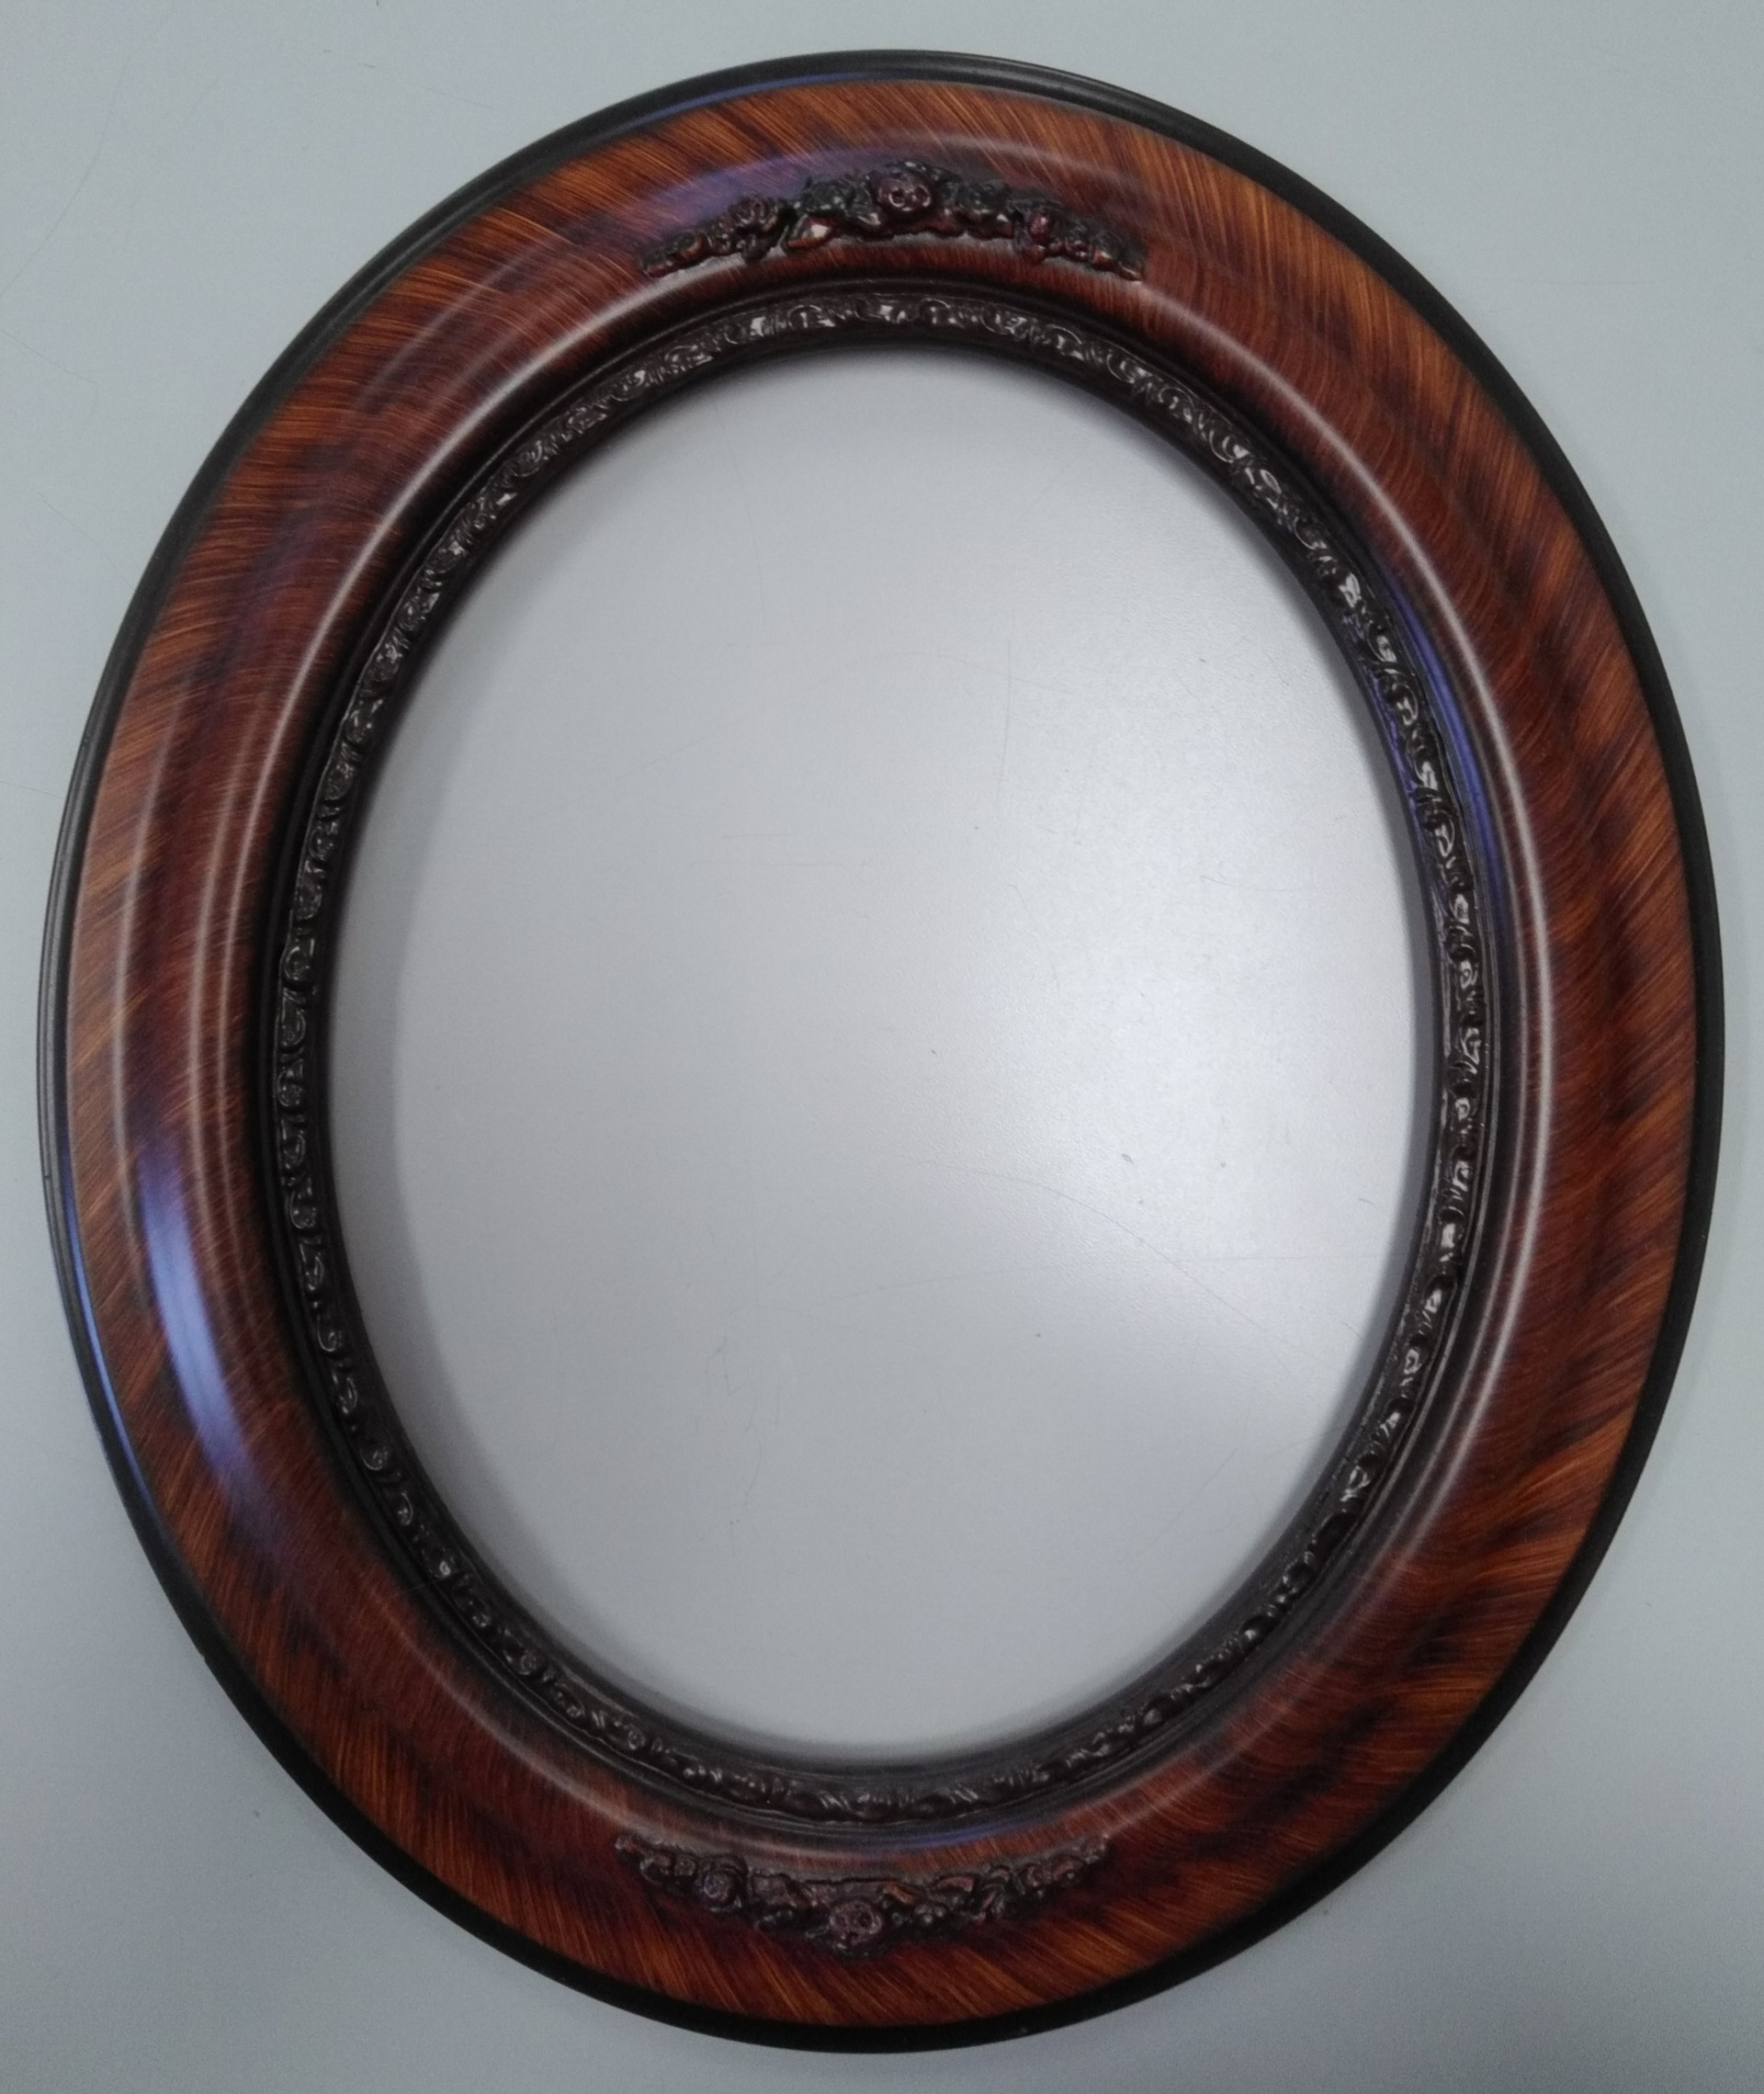 Oval Frames and Domed Glass